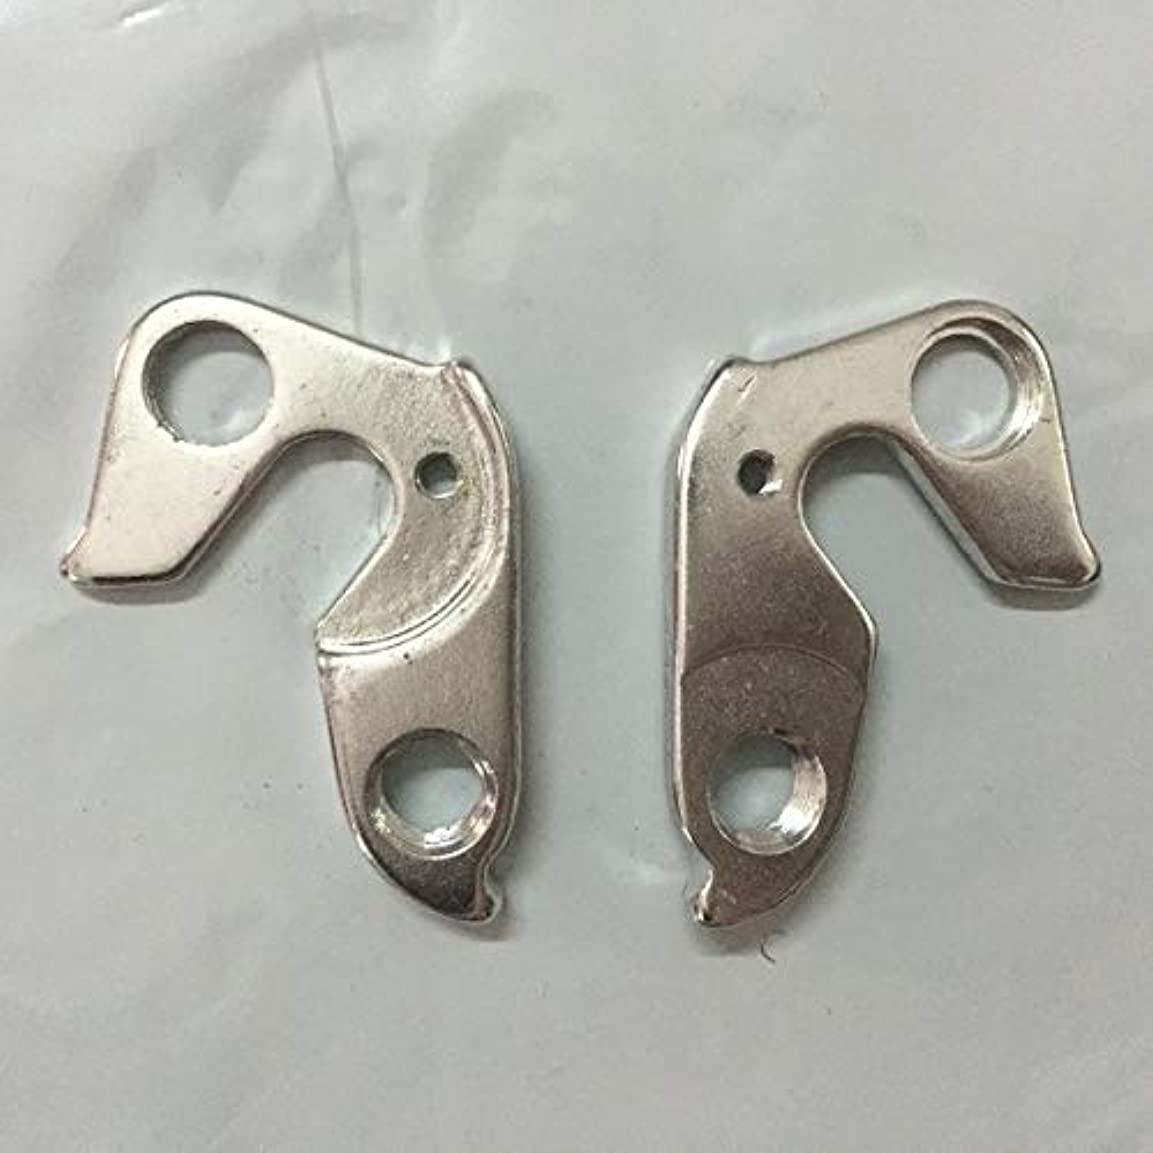 聖なる王子パイルPropenary - 1pcs 1-24 Number Universal Road Bicycle Bike Alloy Rear Derailleur Hanger Racing Cycling Mountain Frame Gear Tail Hook Parts [ 1pc 03# ]